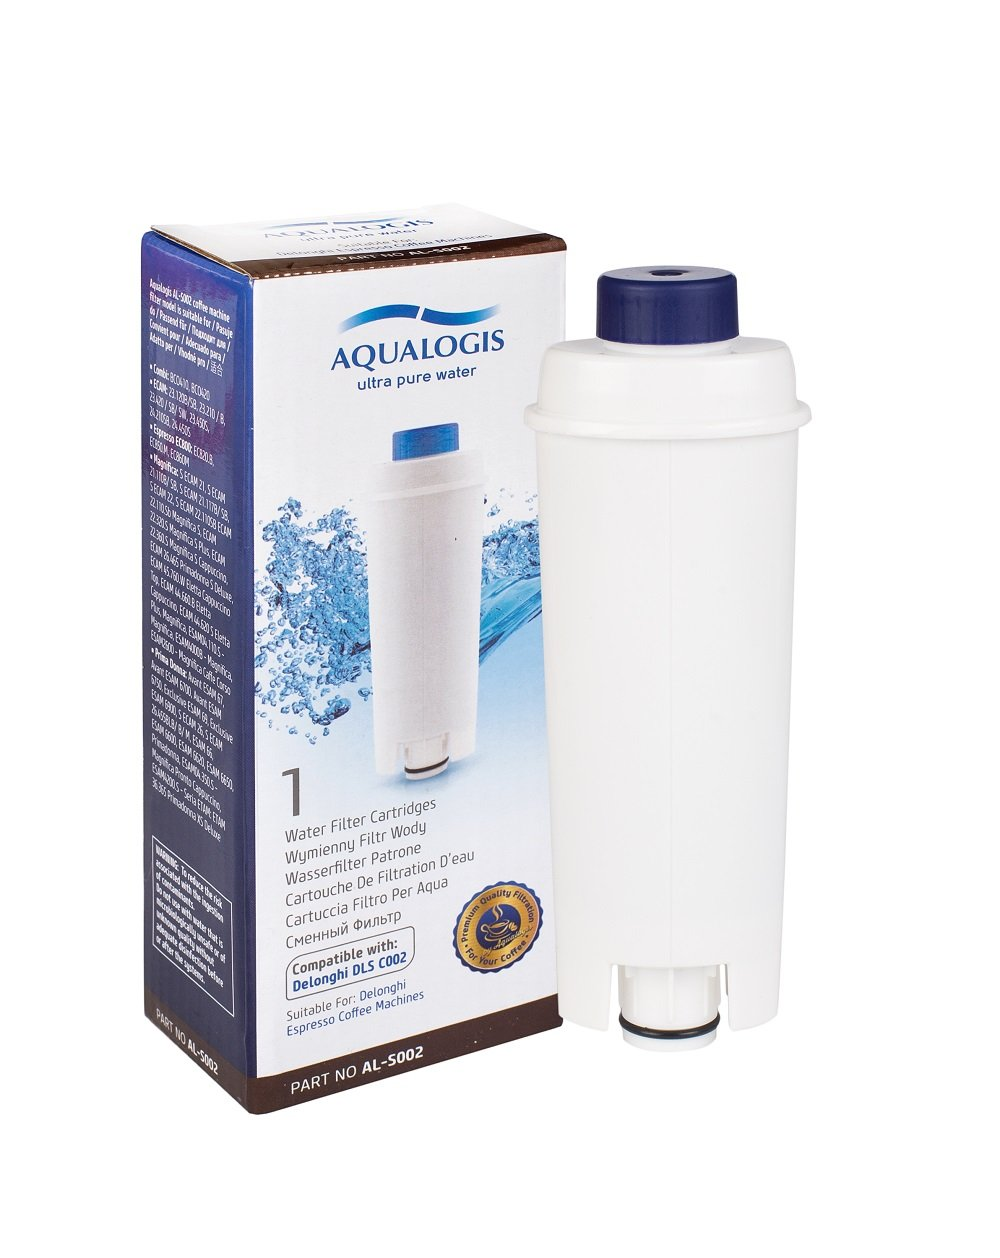 Aqualogis Water Filter Compatible with DeLonghi Espresso Coffee Machines, DLSC002